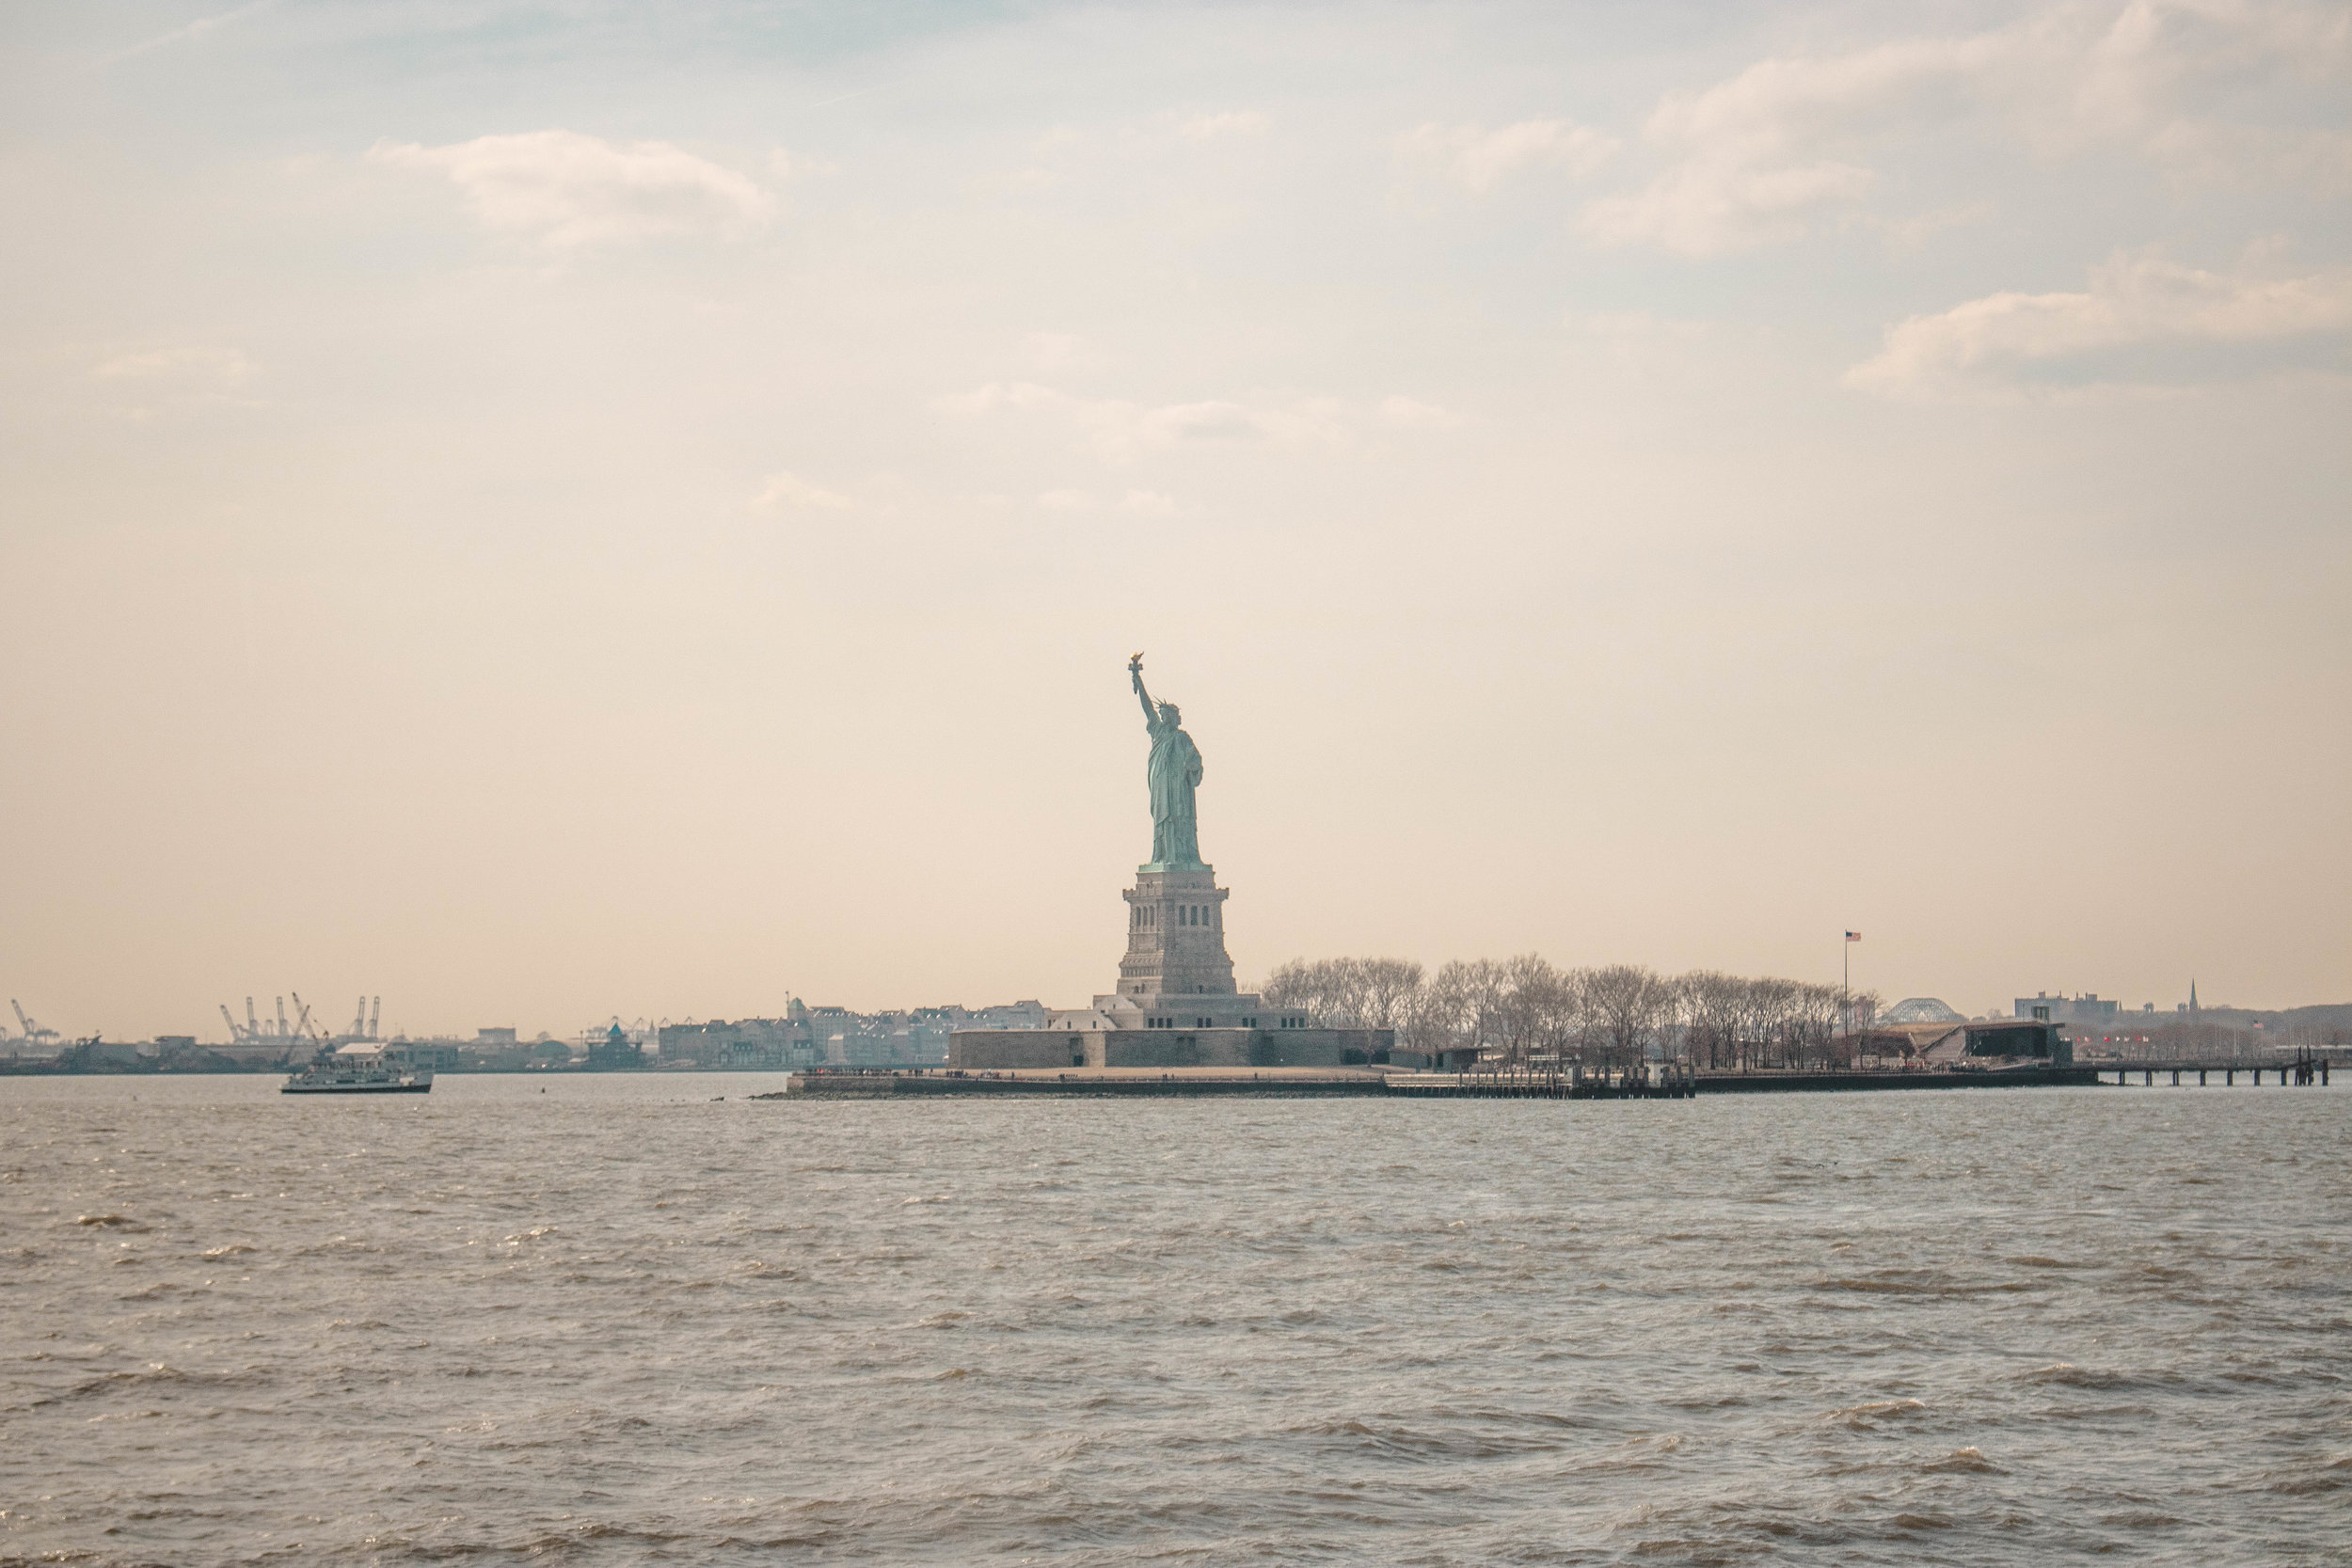 See The Statue Of Liberty For FREE! | SaltWaterVibes